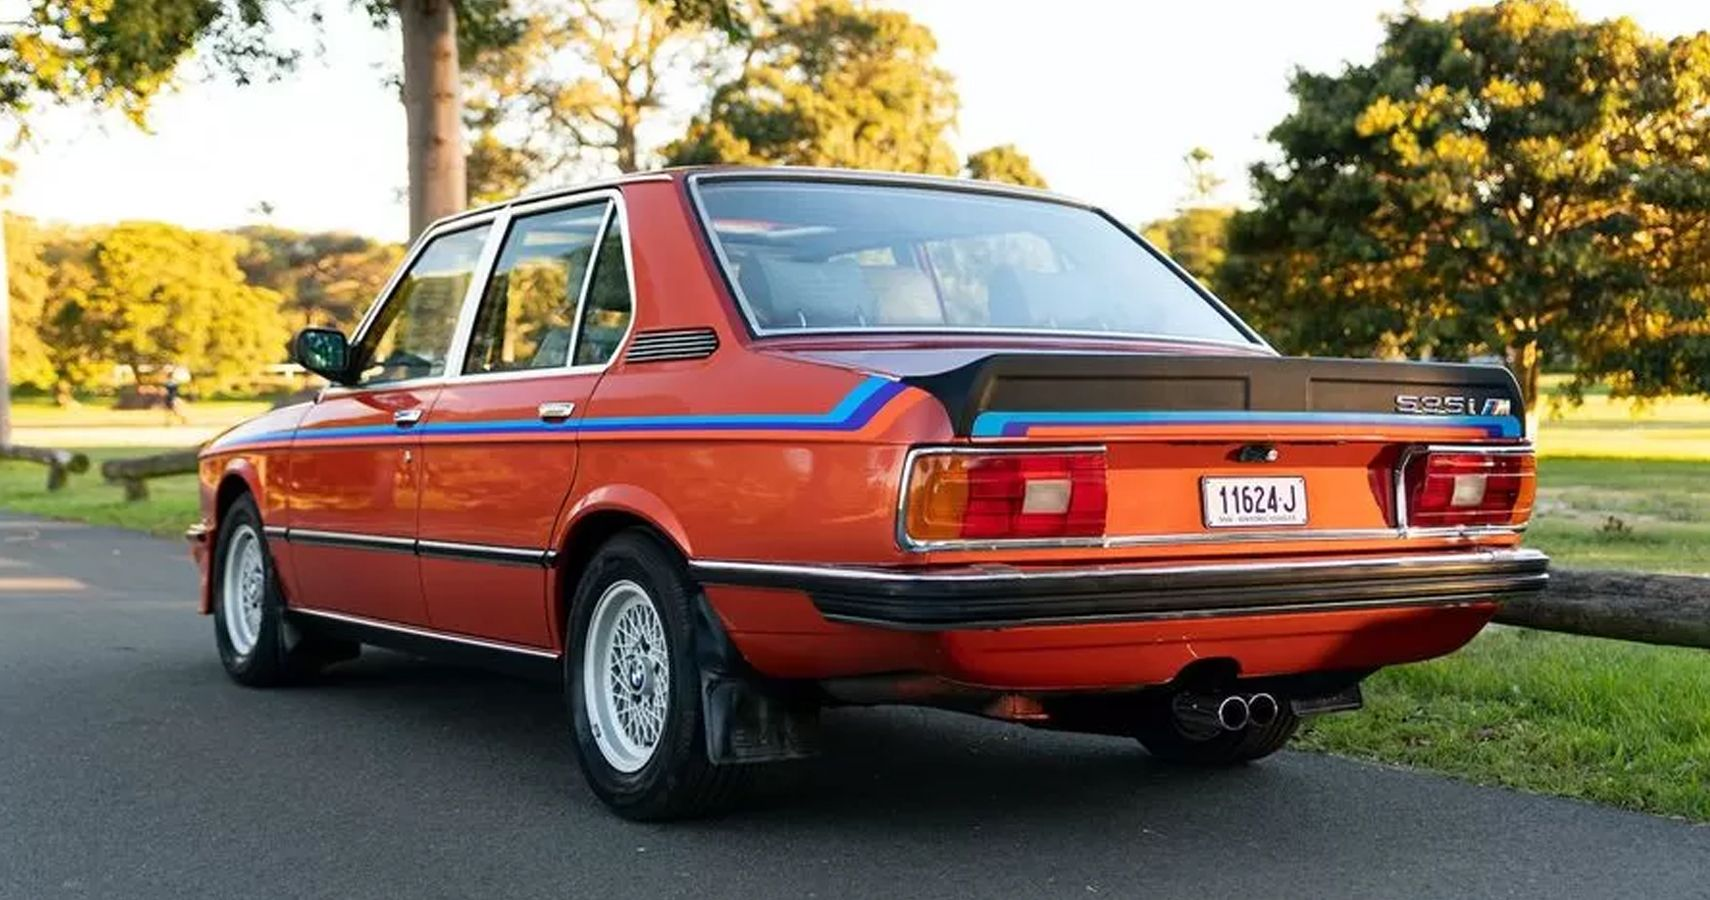 Rare BMW M535i E12 In Perfect Condition Is Up For Auction Down Under